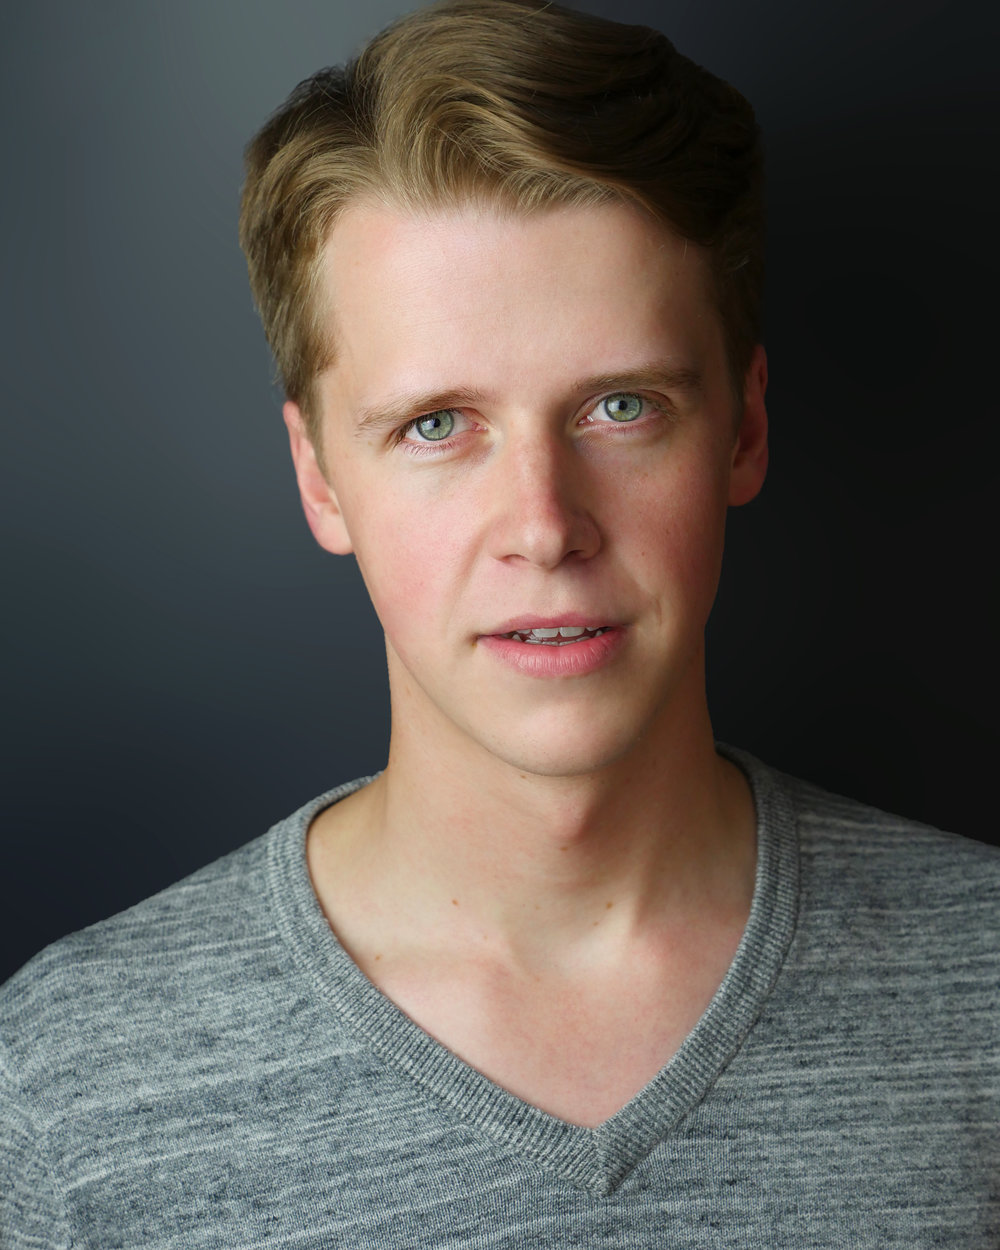 Peter Atkinson - Headshot